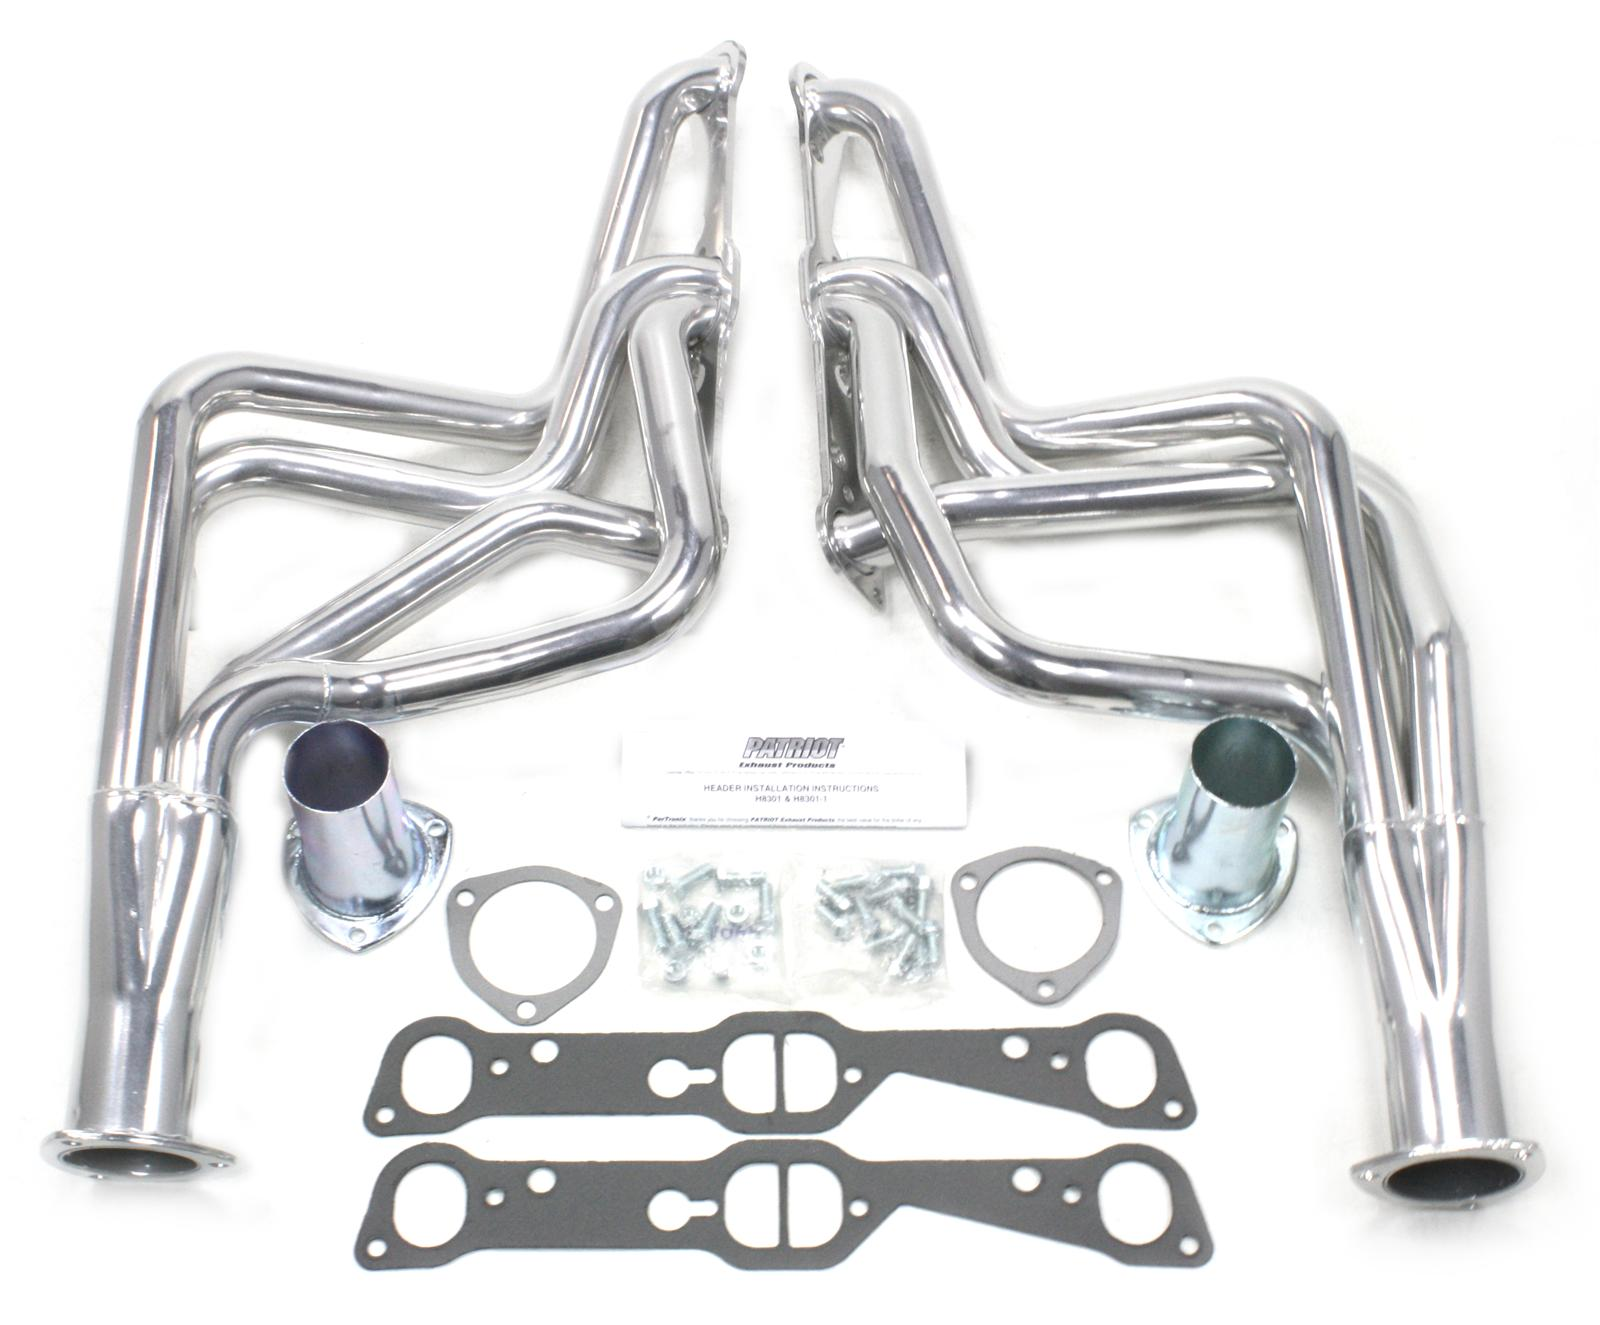 Patriot Full Length Headers Silver Ceramic Coated 1 5 8